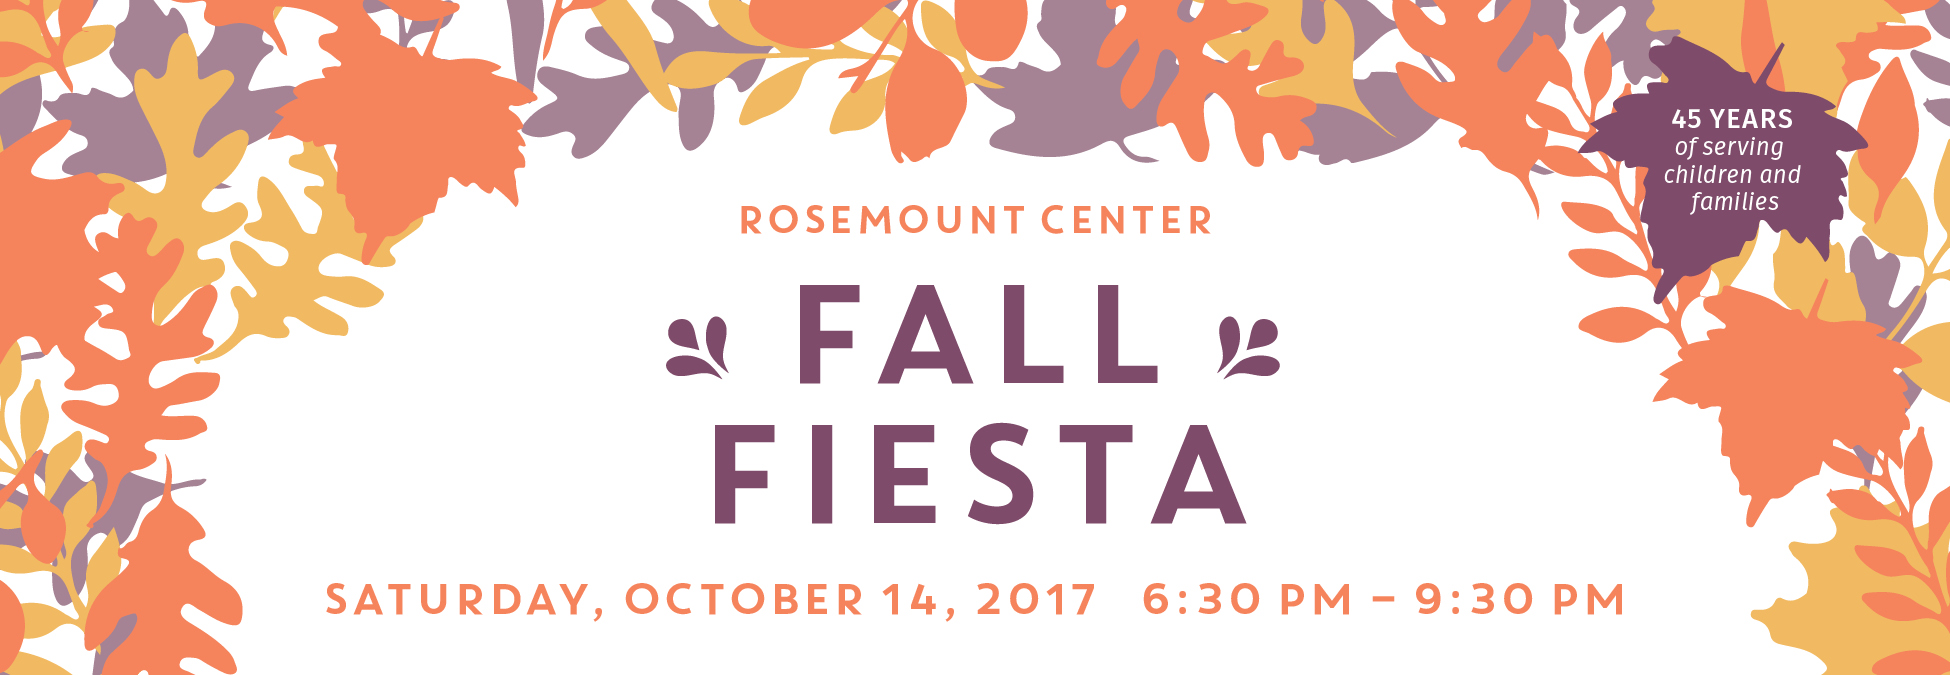 fall fiesta 2017 logo word